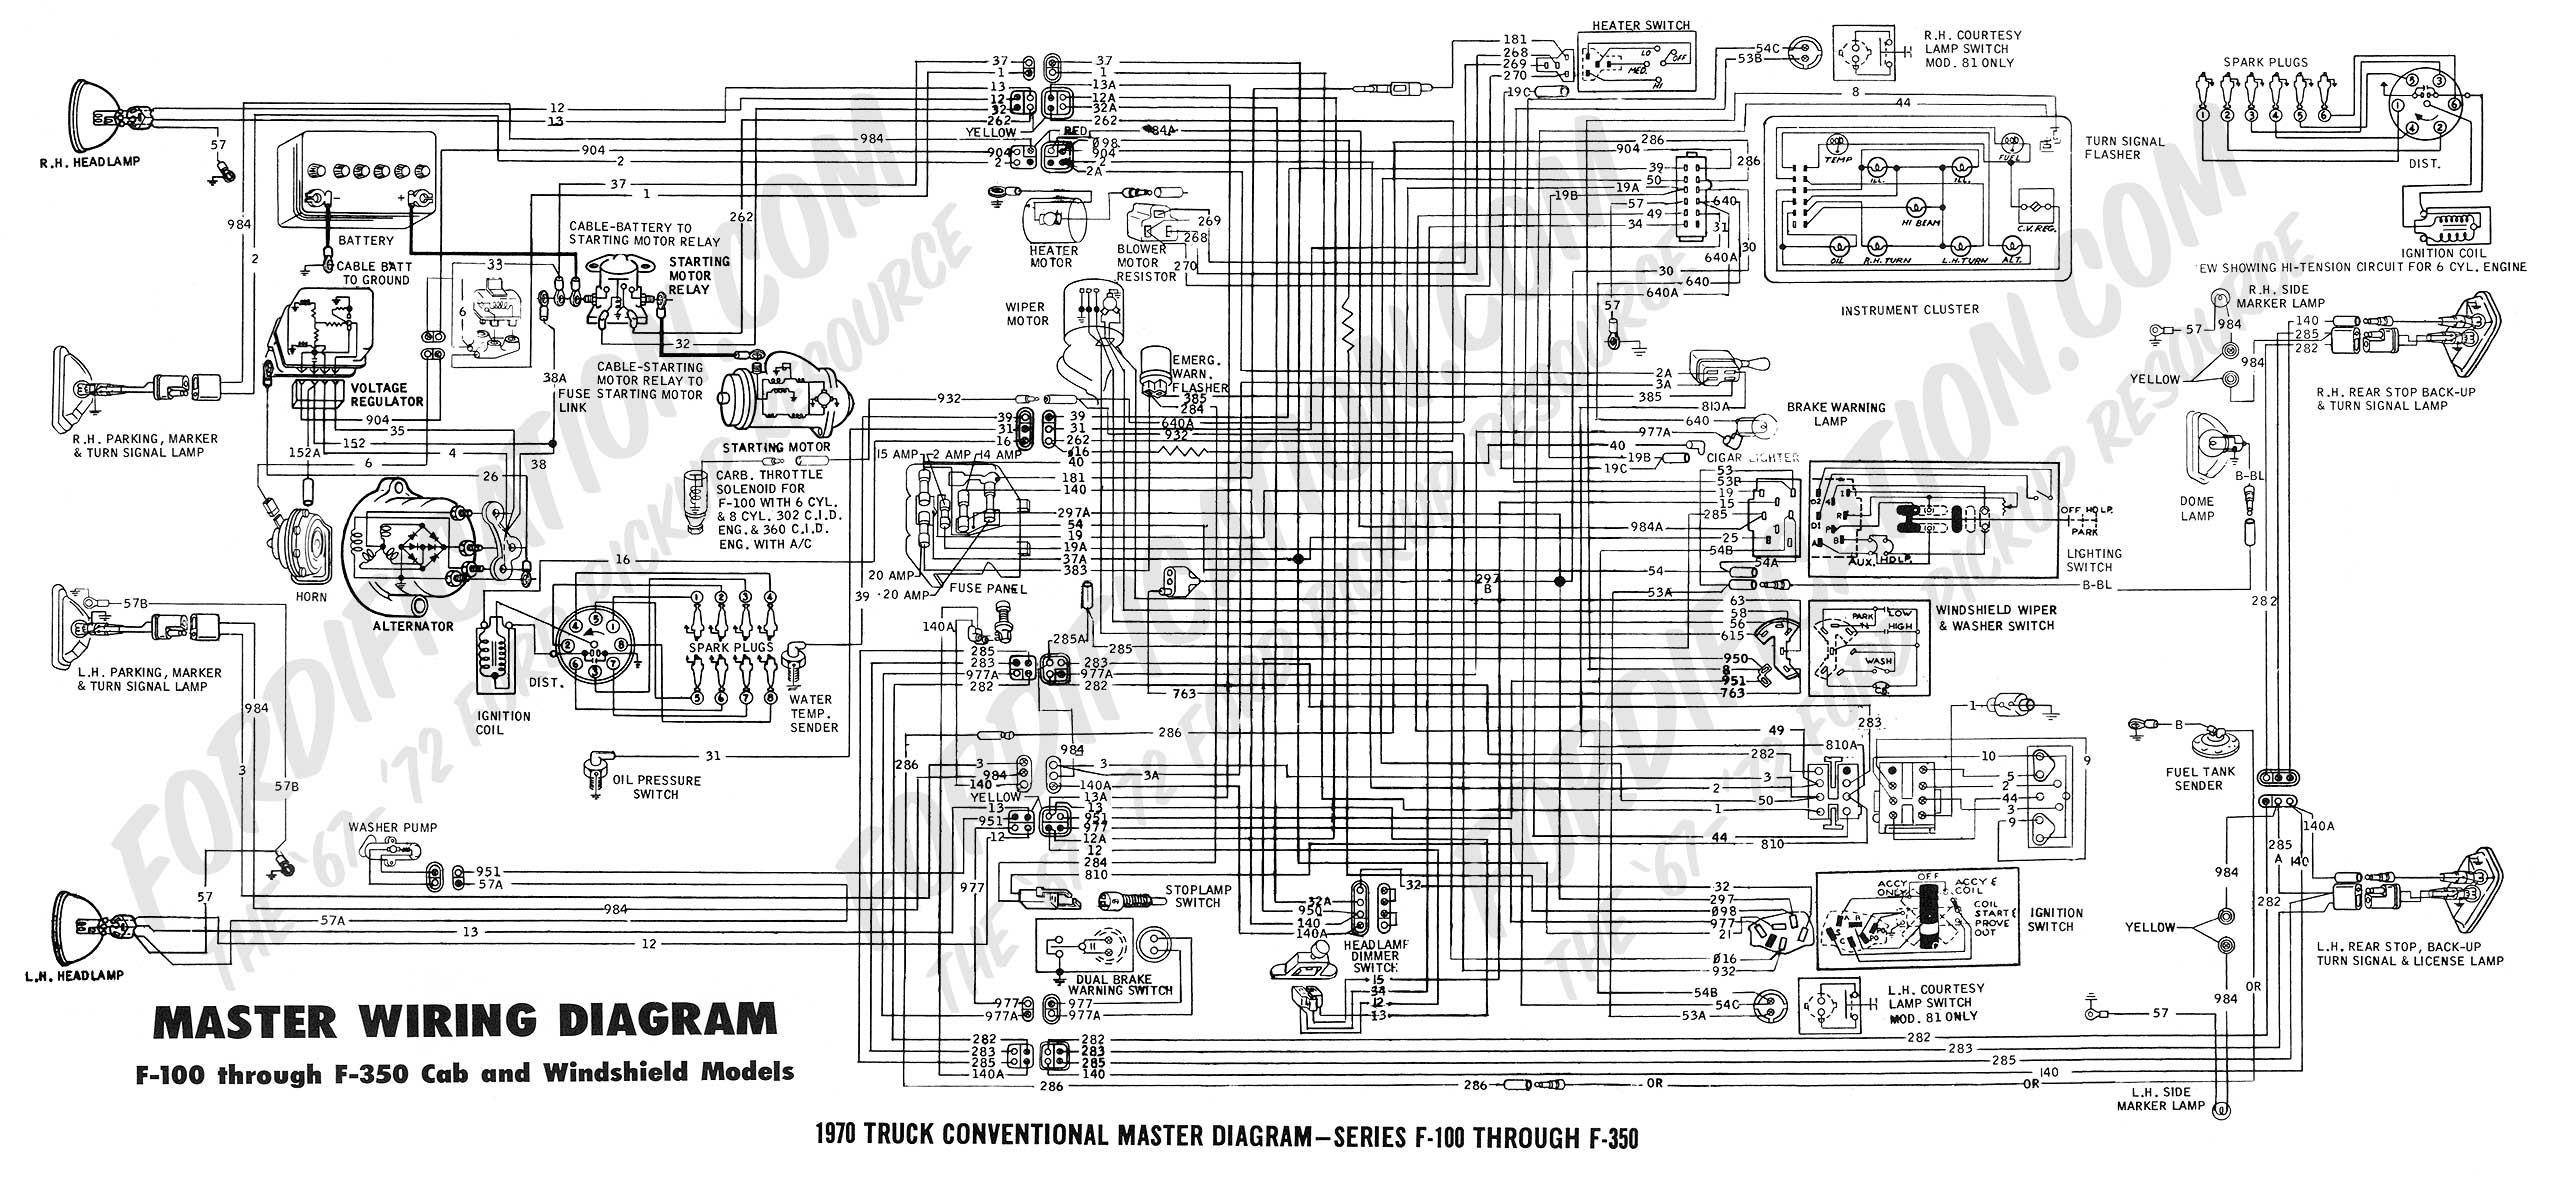 wiring diagram 70_master f450 wiring diagram f250 wiring diagram 2016 \u2022 wiring diagrams j 1994 ford f150 headlight wiring diagram at aneh.co